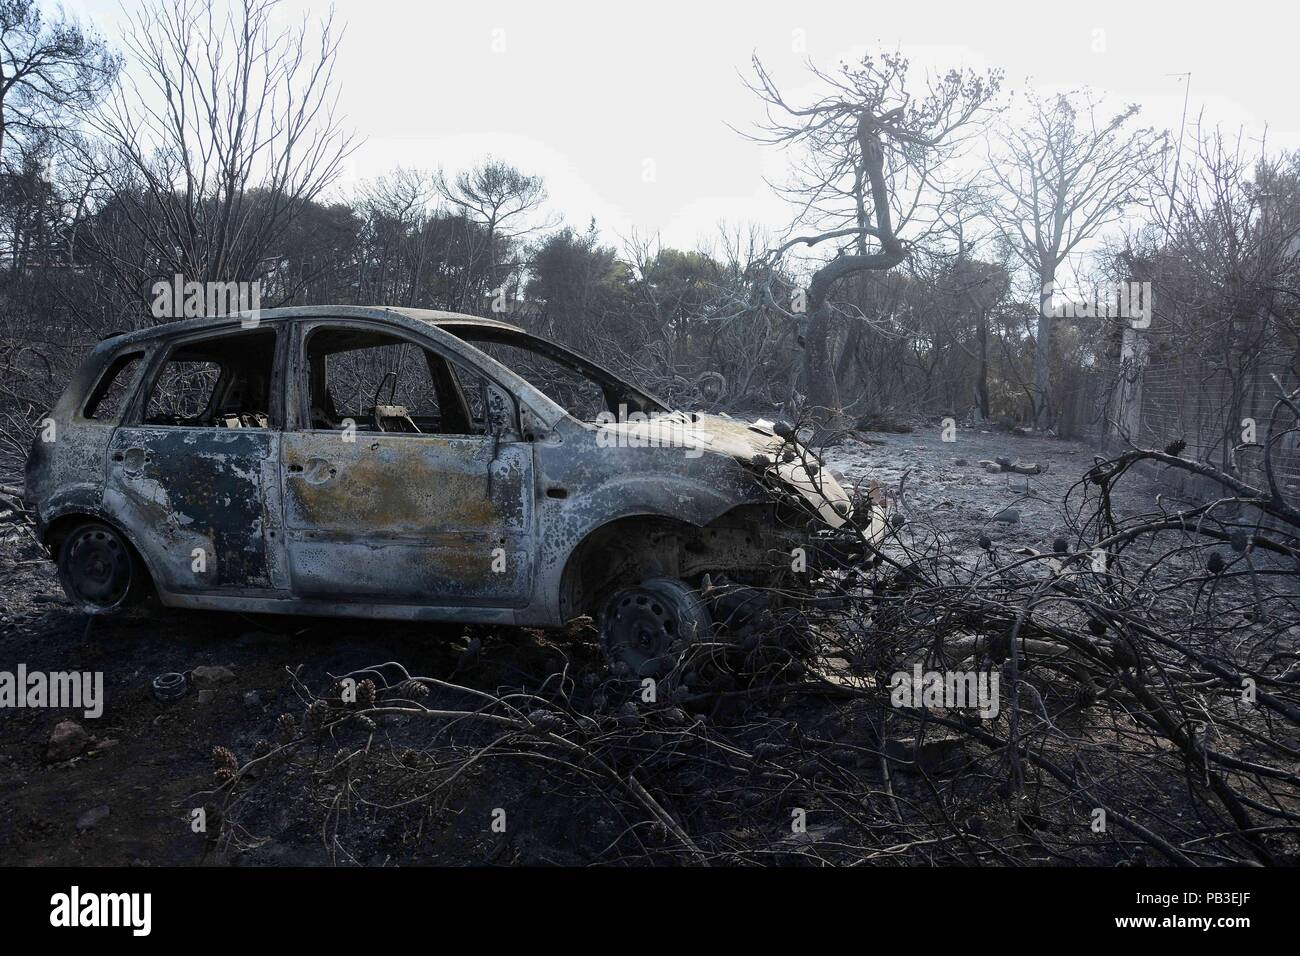 athens, greece. 26th july, 2018. burned car seen in the area of the